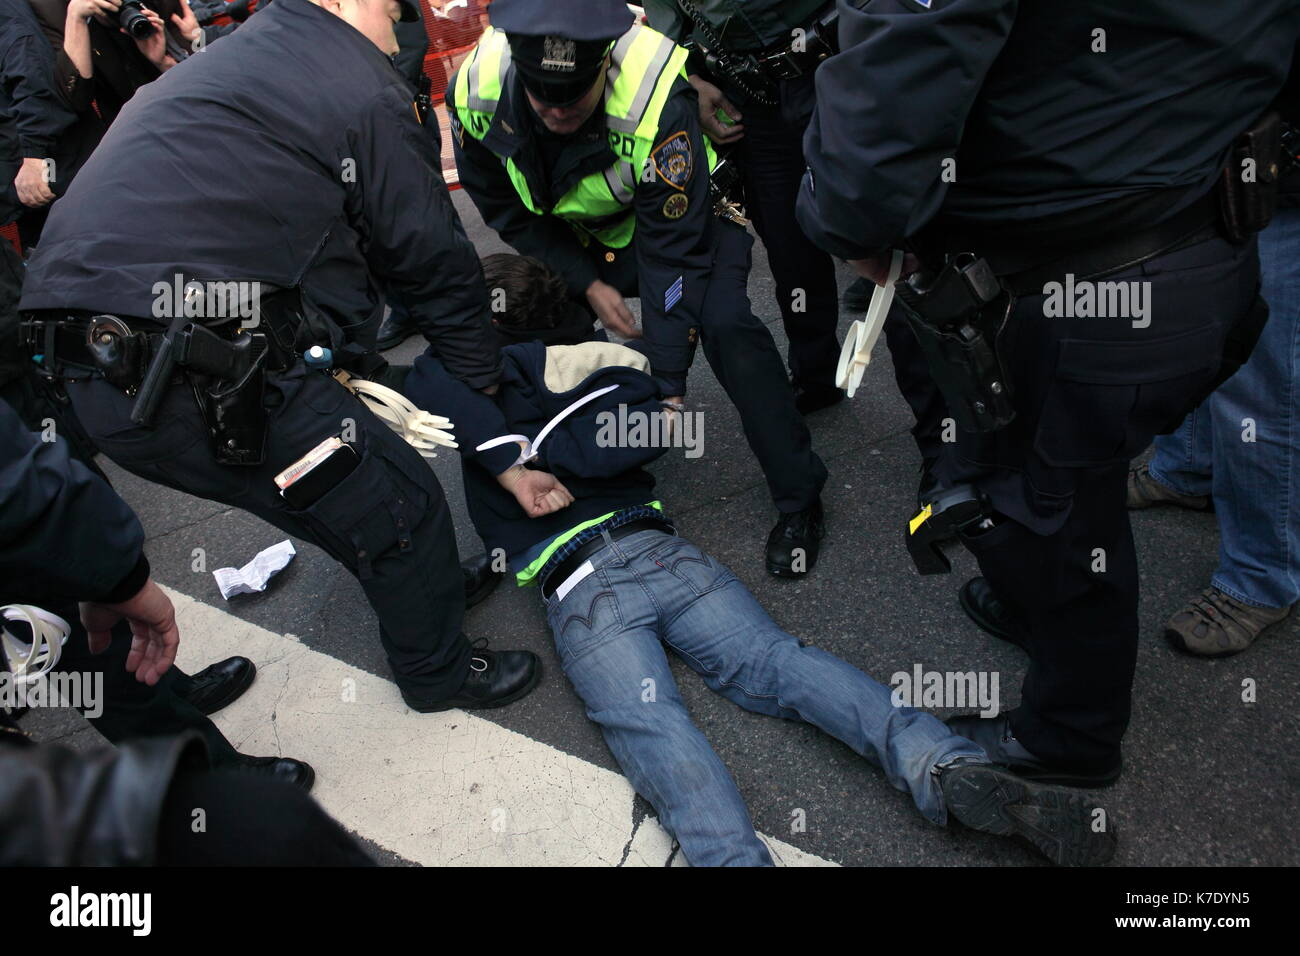 NYPD officers arrest a young an as he refuses to vacate the sidewalk outside the New York County Supreme Court at Foley Square on November 5, 2011. Pr - Stock Image